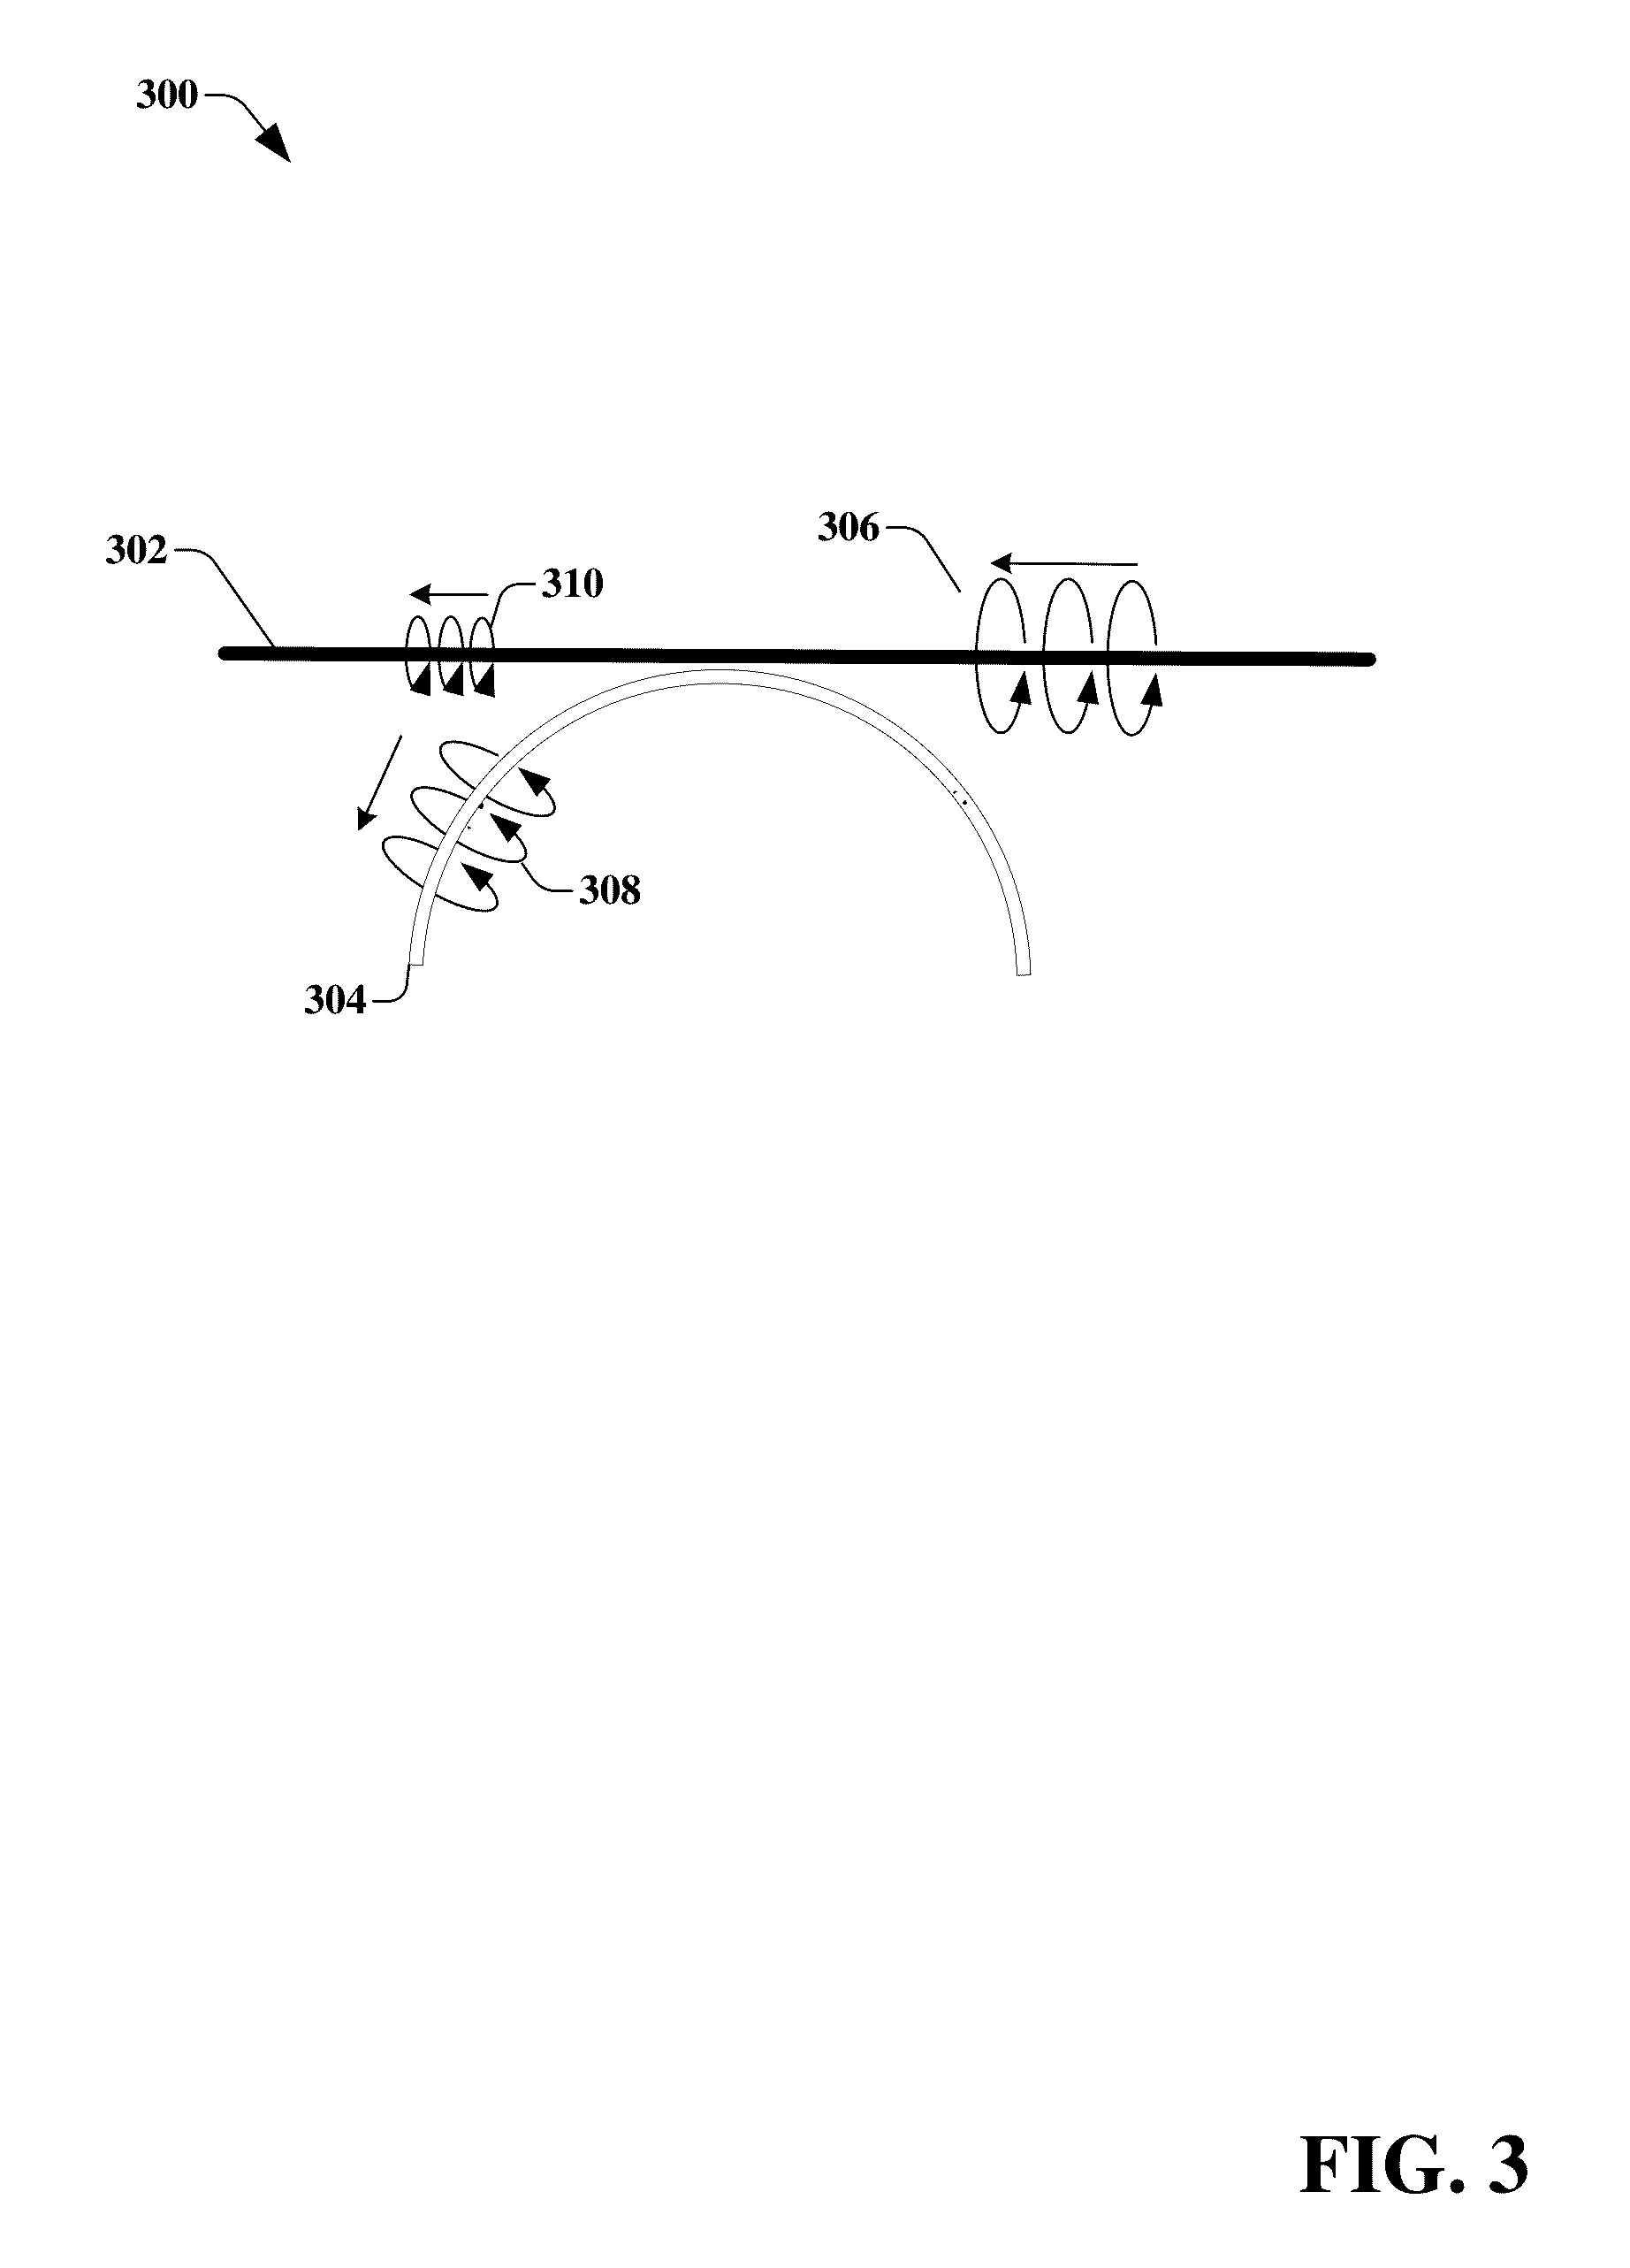 Us9531427b2 transmission device with mode division multiplexing and methods for use therewith patents